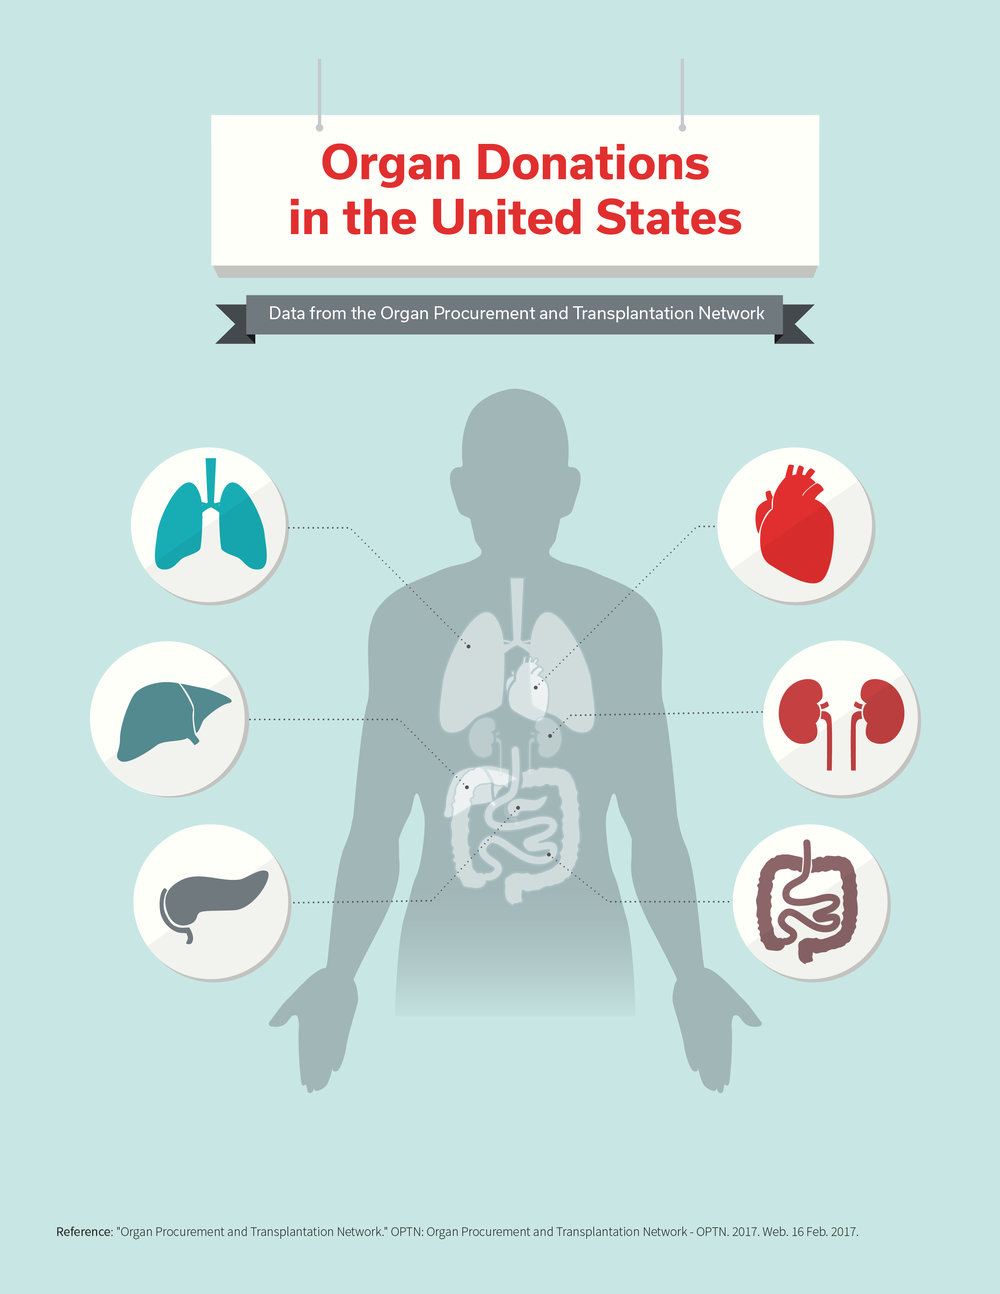 Organ Donations in the United States